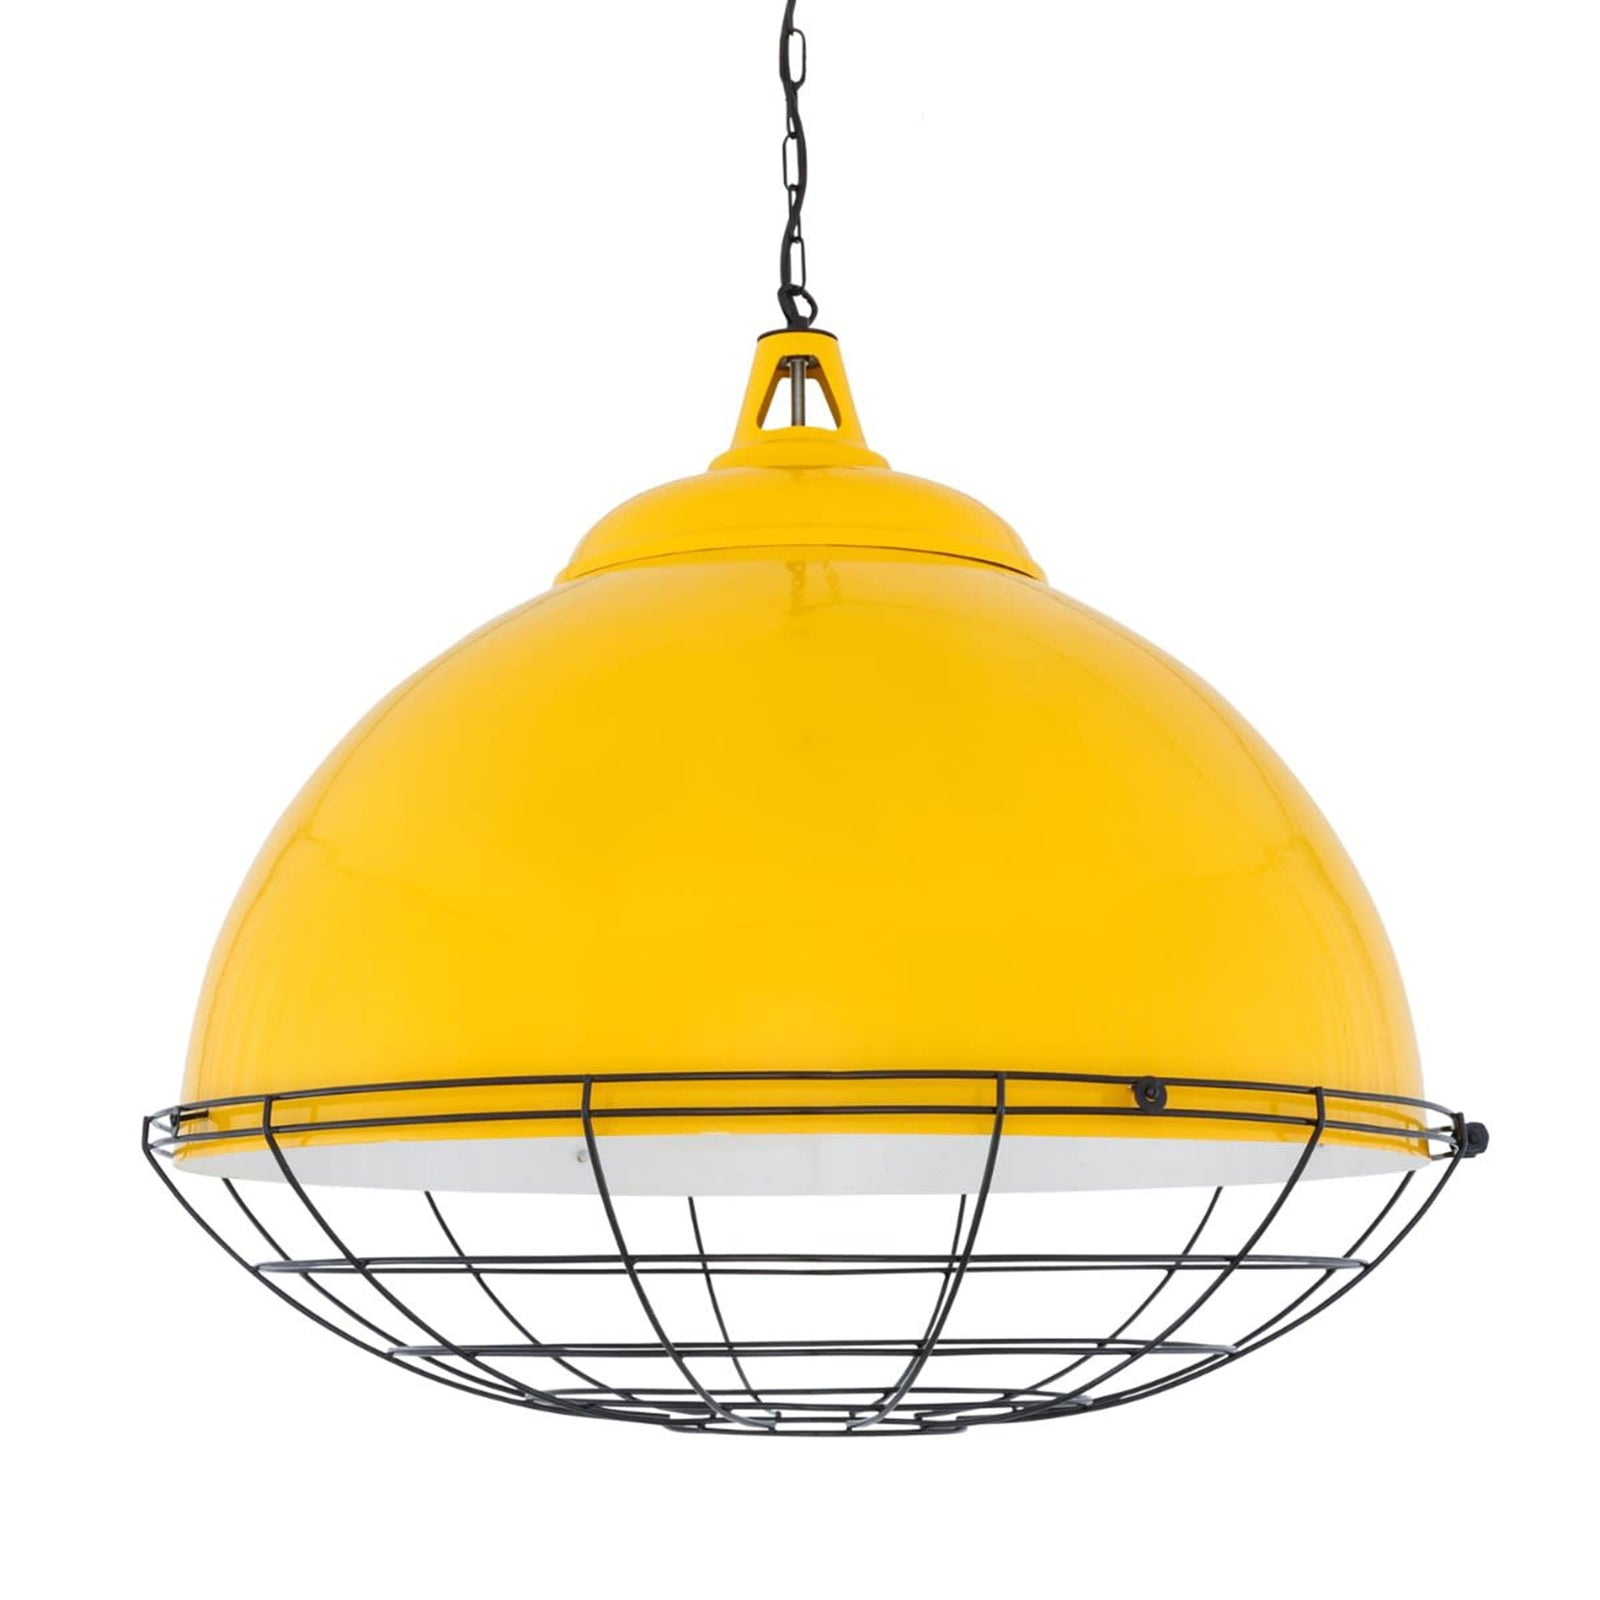 Mullan Lighting Lighting Yellow Brussels Pendant